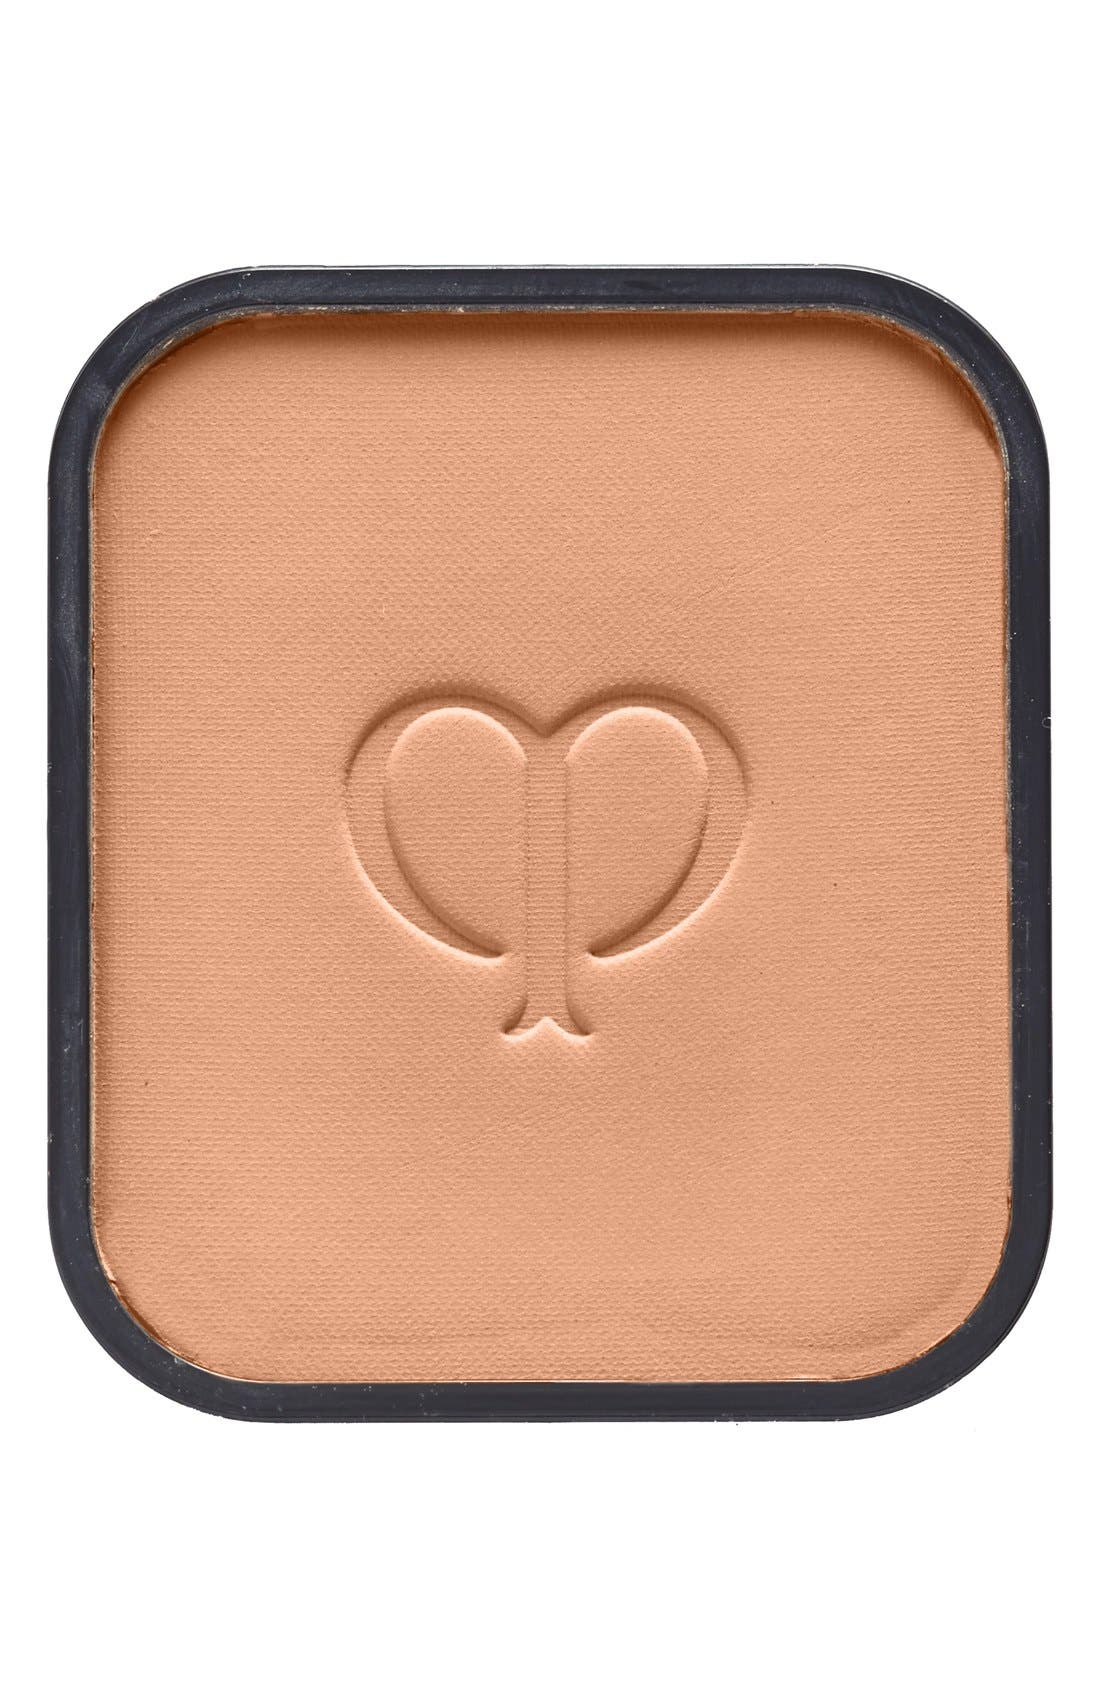 Clé de Peau Beauté Radiant Powder Foundation SPF 23